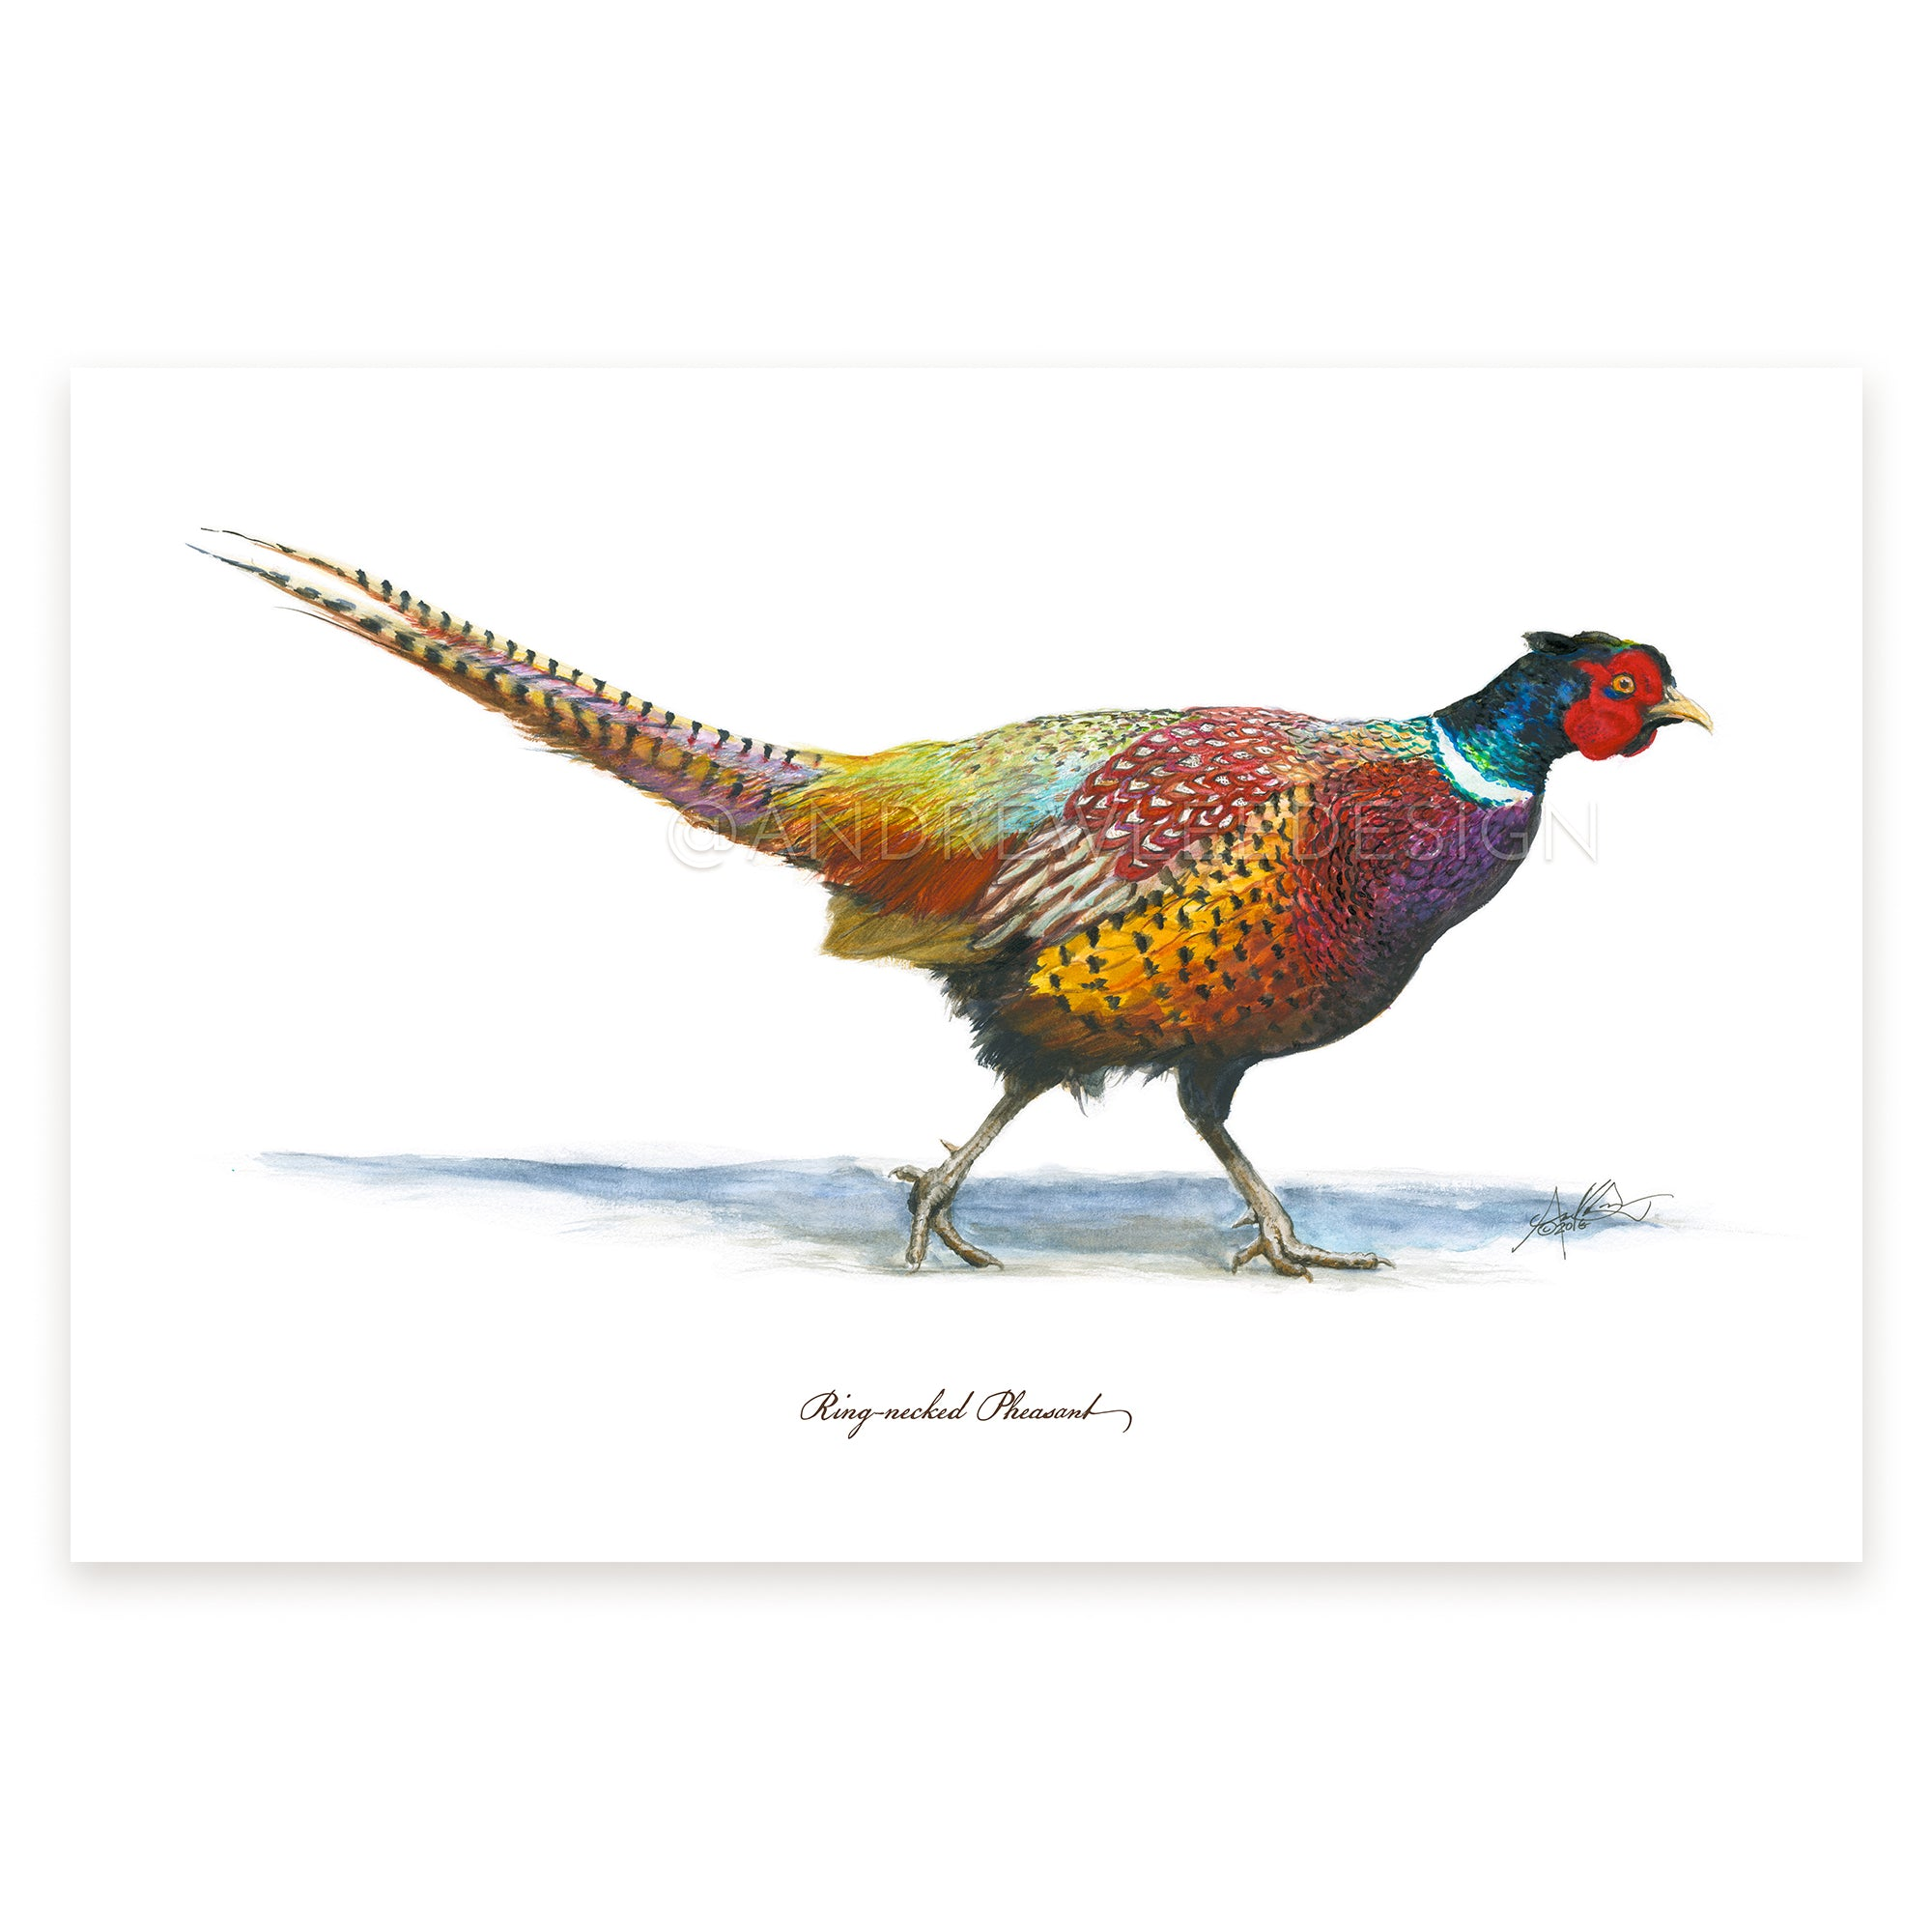 "Ring-necked Pheasant, 12x18"" Print"